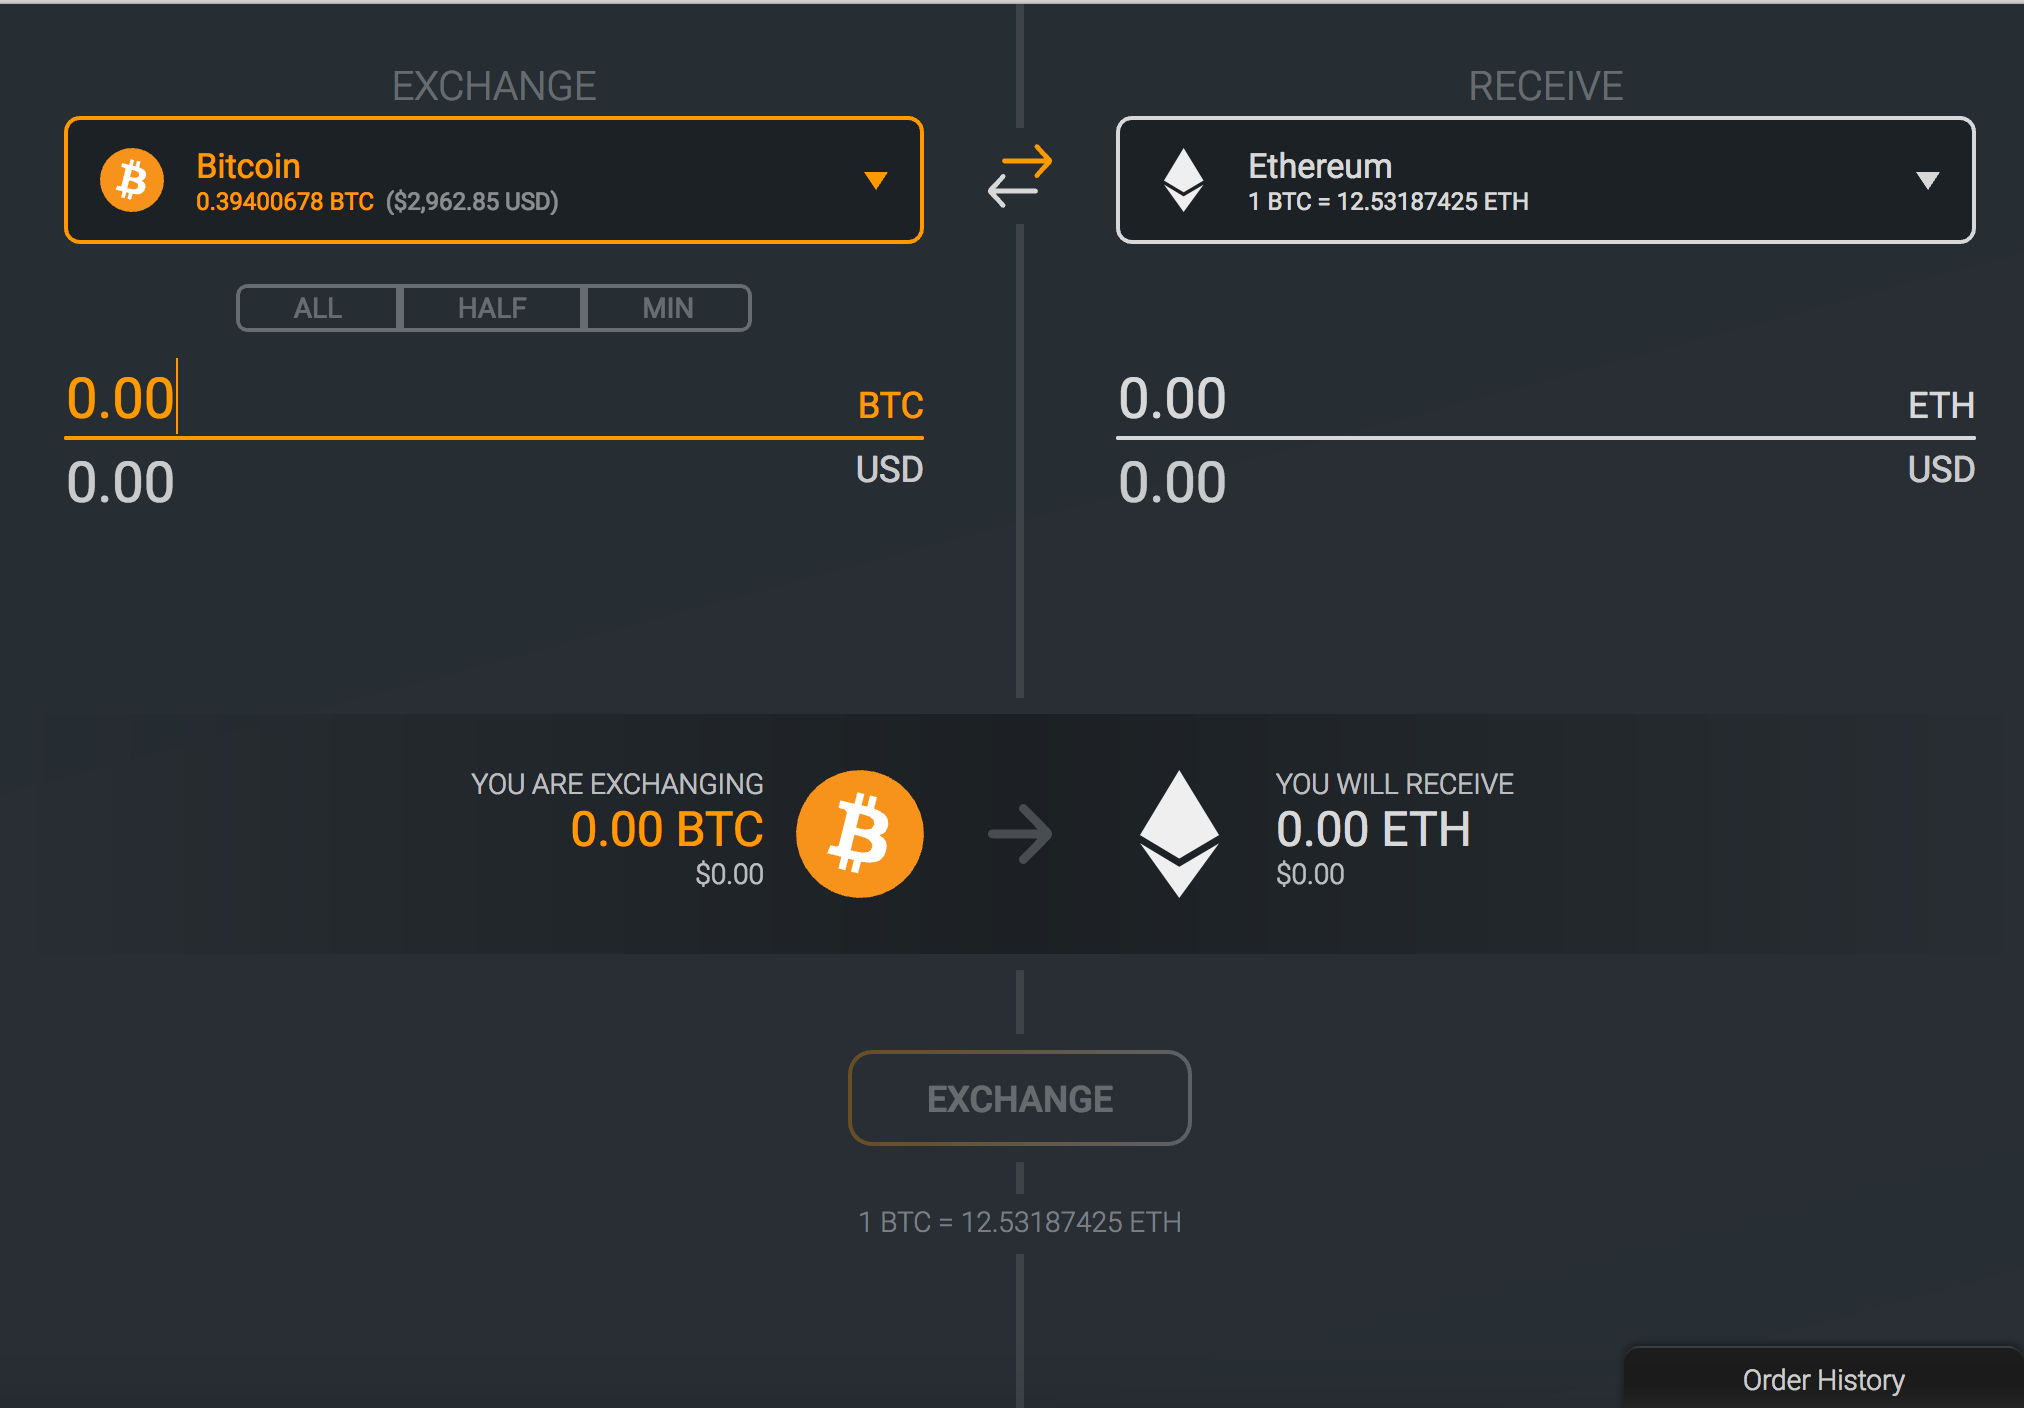 Exodus Wallet Exchange